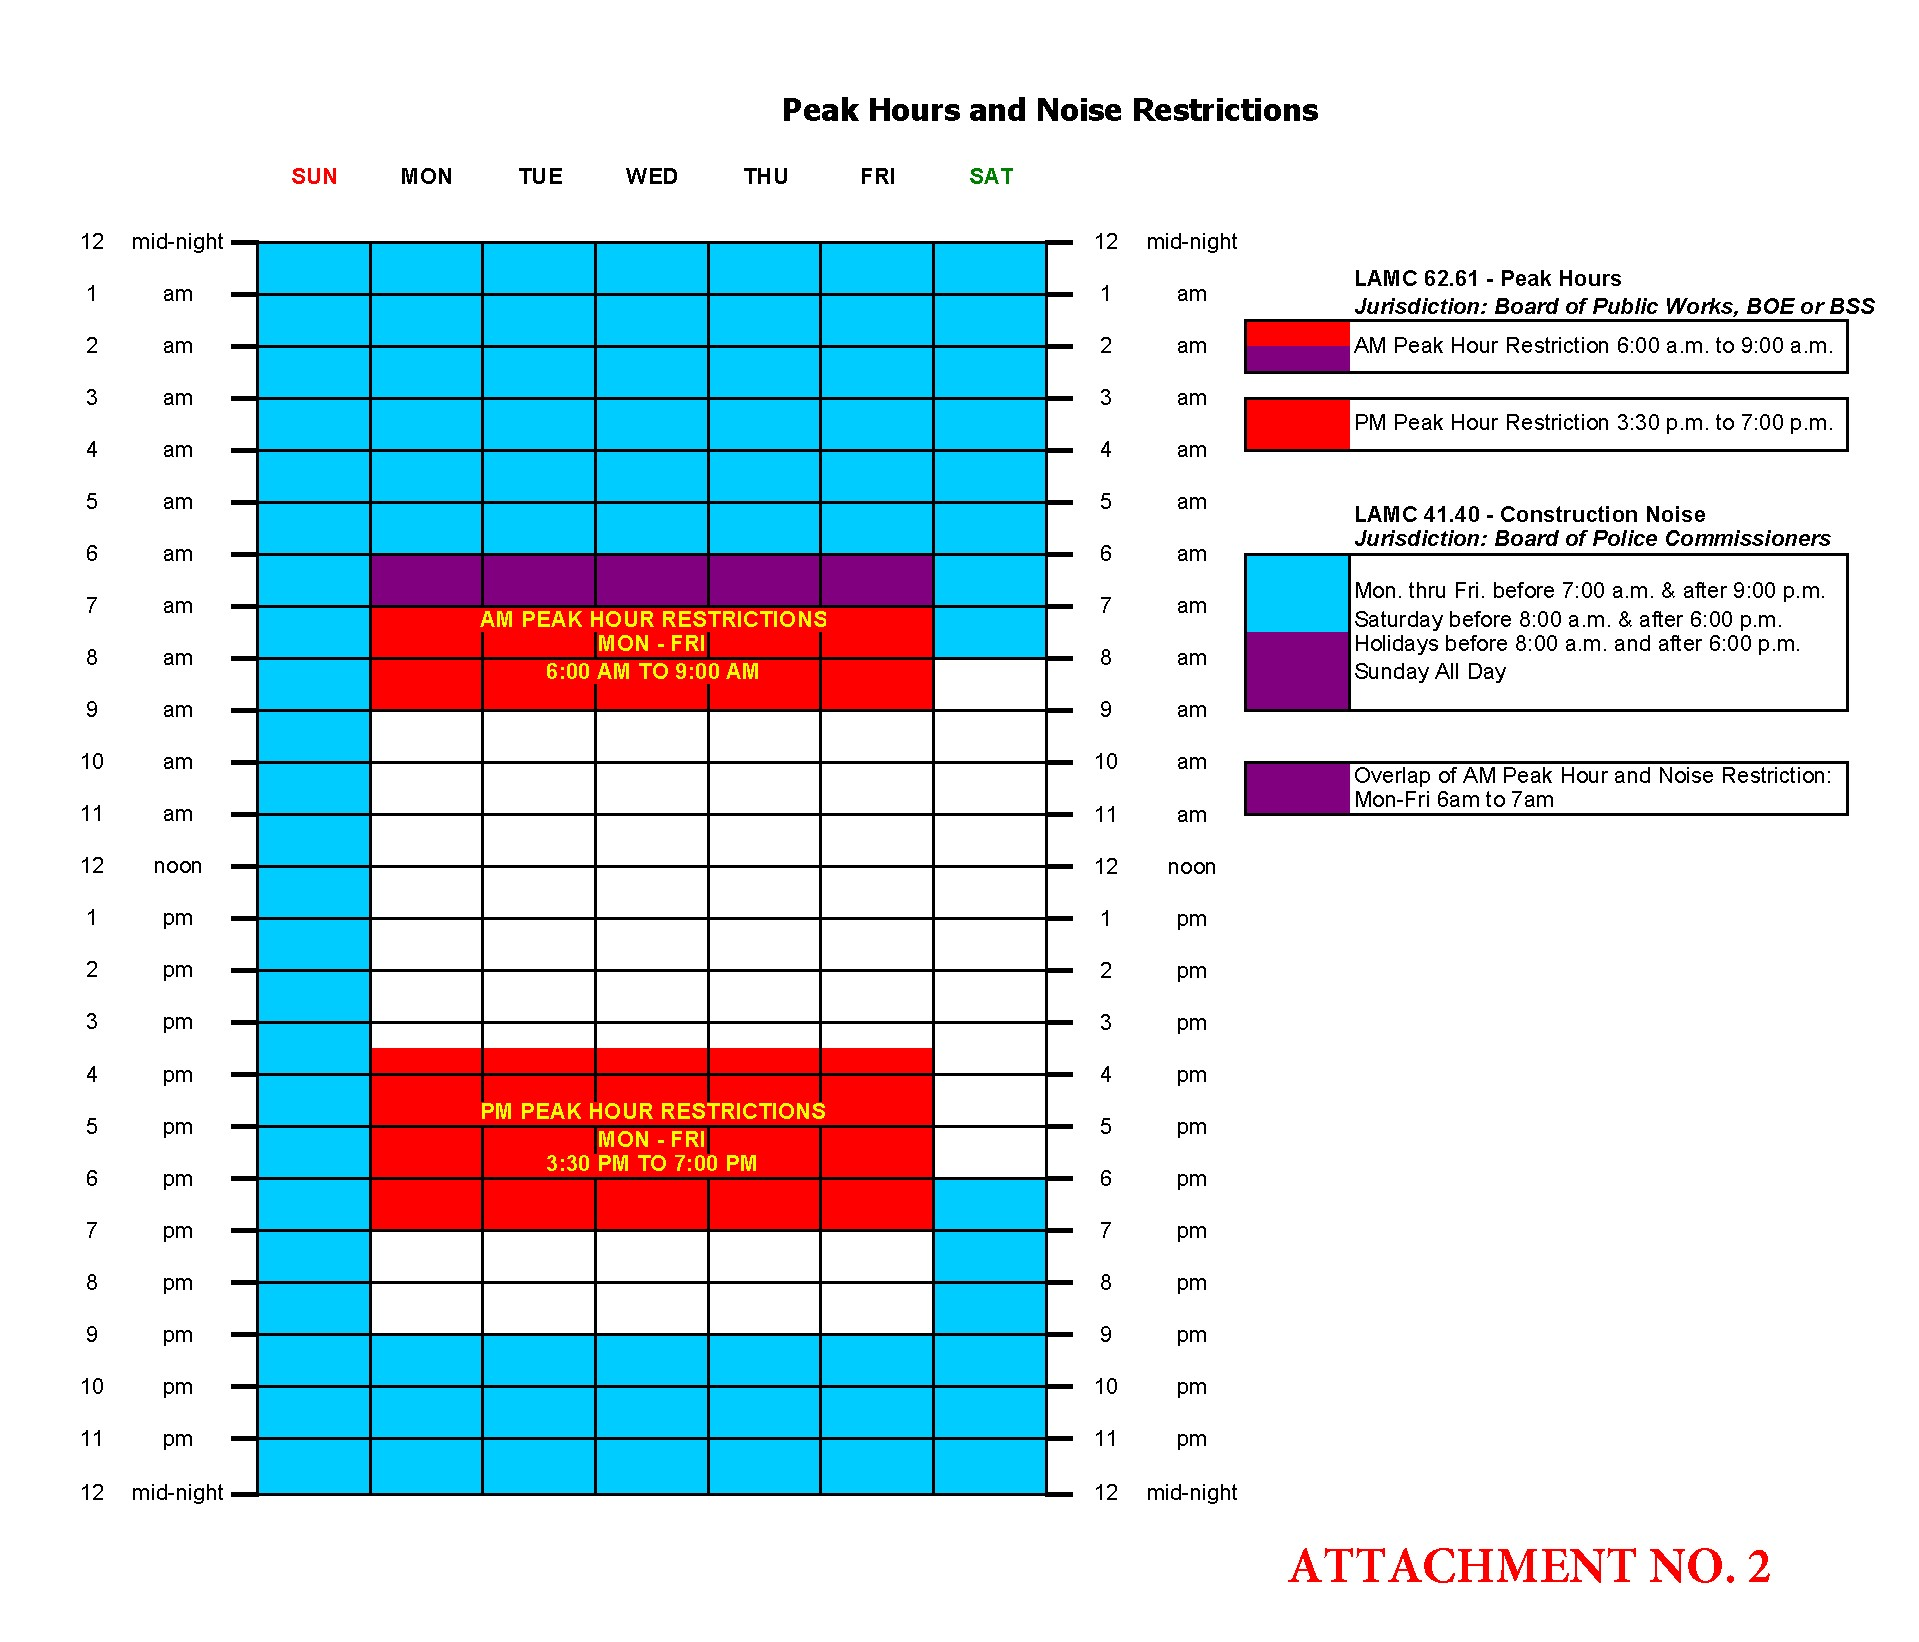 Picture of a Peak Hour and Noise Restriction hour chart